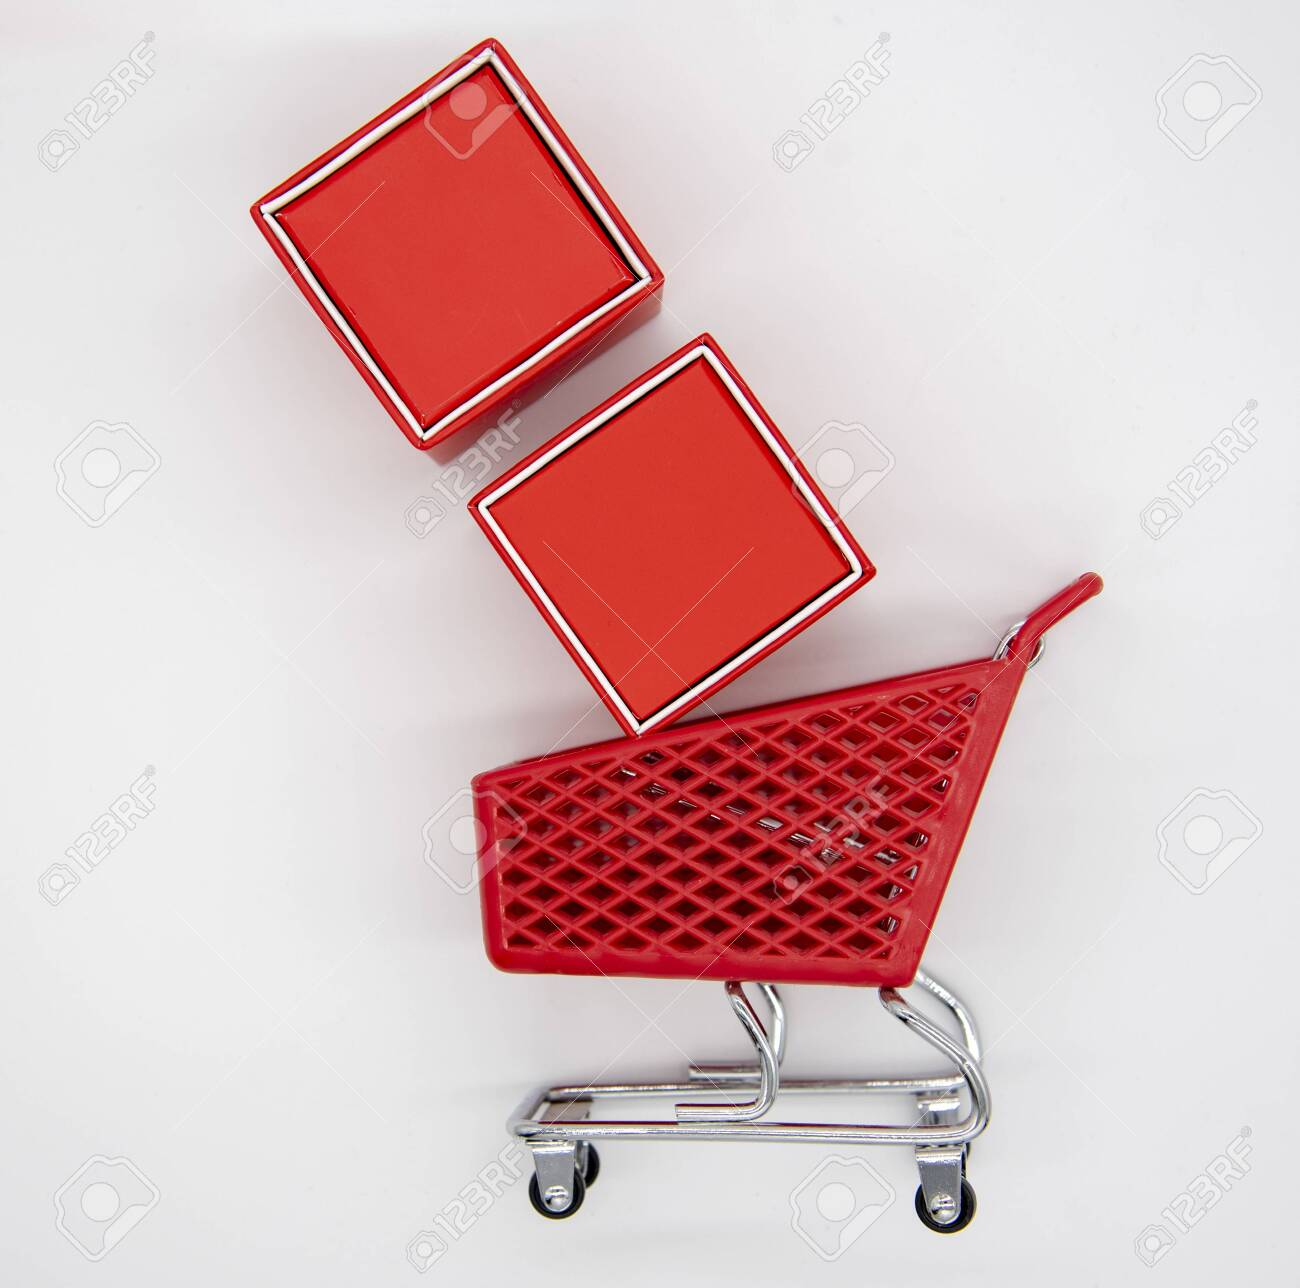 Shopping Cart And Red Gift Boxes On A Light Gray Background Royalty Free Stok Fotograf Resimler Gorseller Ve Stok Fotografcilik Image 136157370